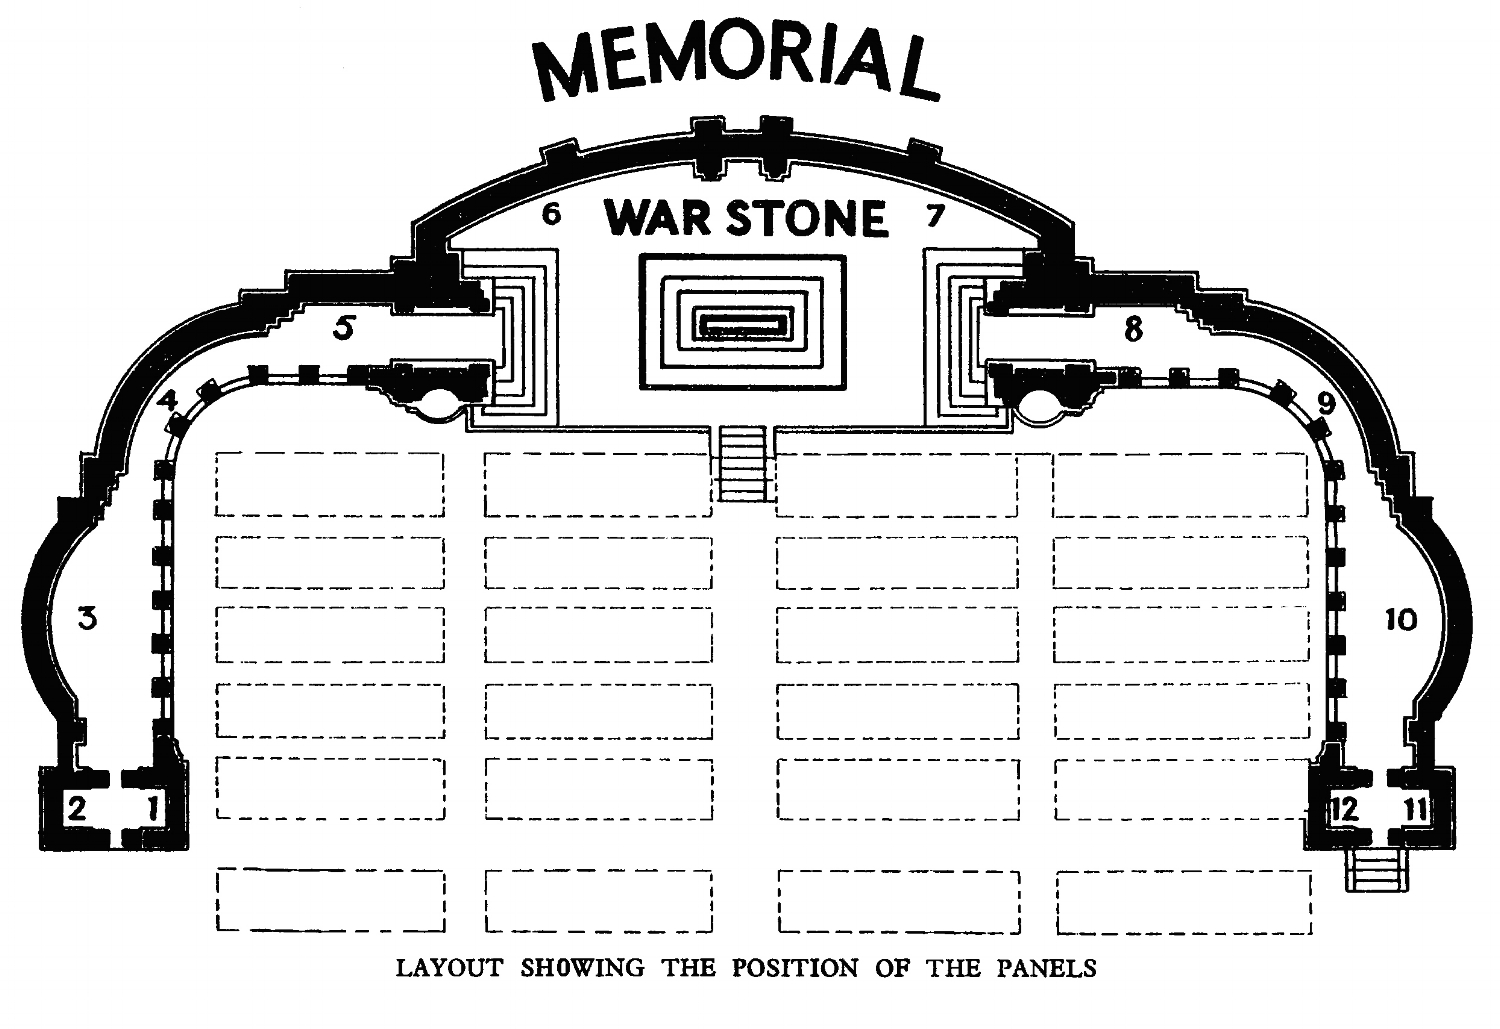 Layout of the panels on the Vis-en-Artois Memorial. Walter Mobbs is commemorated on panels 6 and 7.